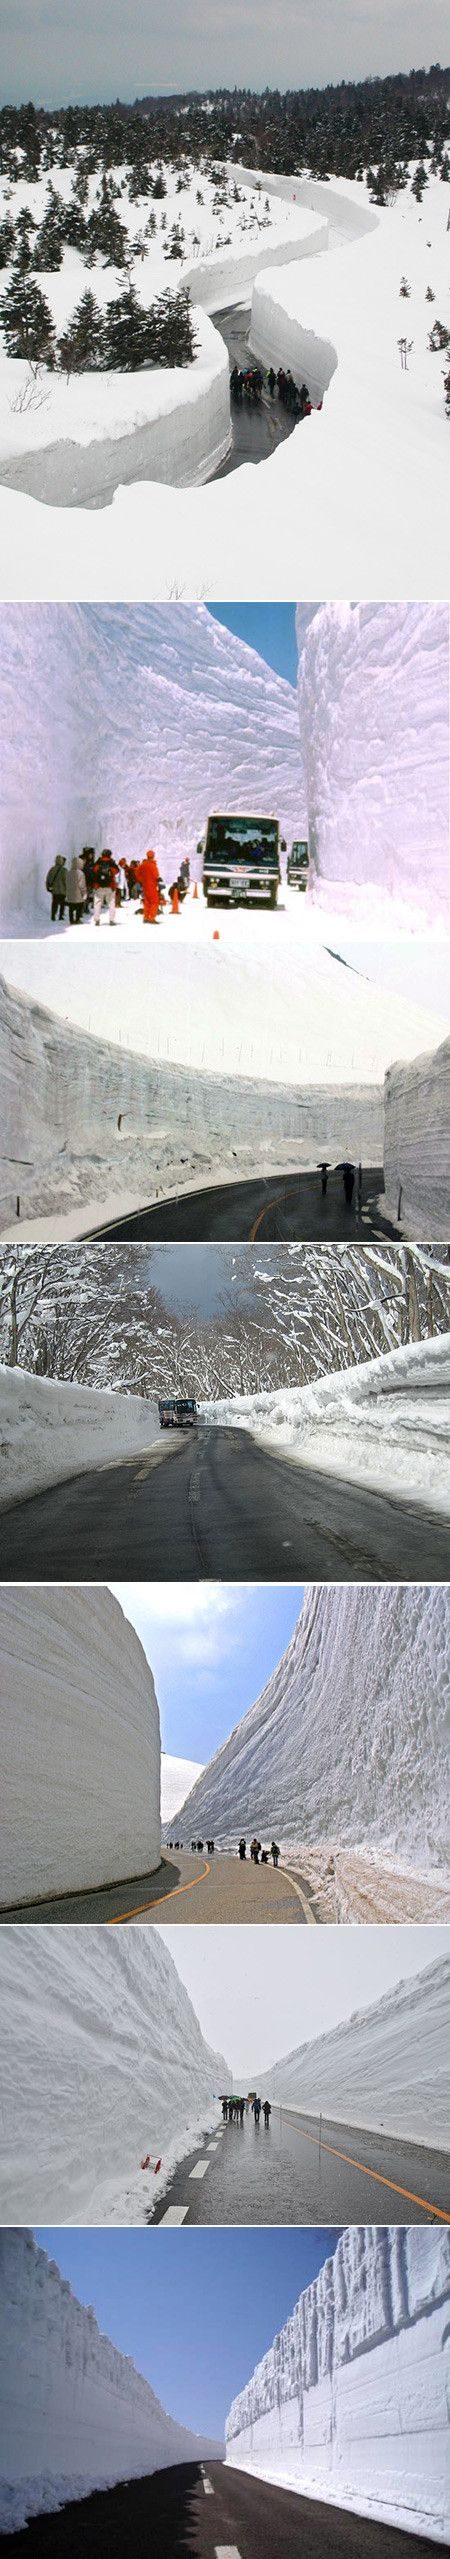 """The """"Snow Corridor"""" in Japan's Aomori Prefecture is one the popular tourist sights, with snow walls reaching a height of 9-meters (30-feet), allowing visitors to enjoy magnificent views of the vivid blue of the sky contrasted against the white of the snow in perfect harmony."""